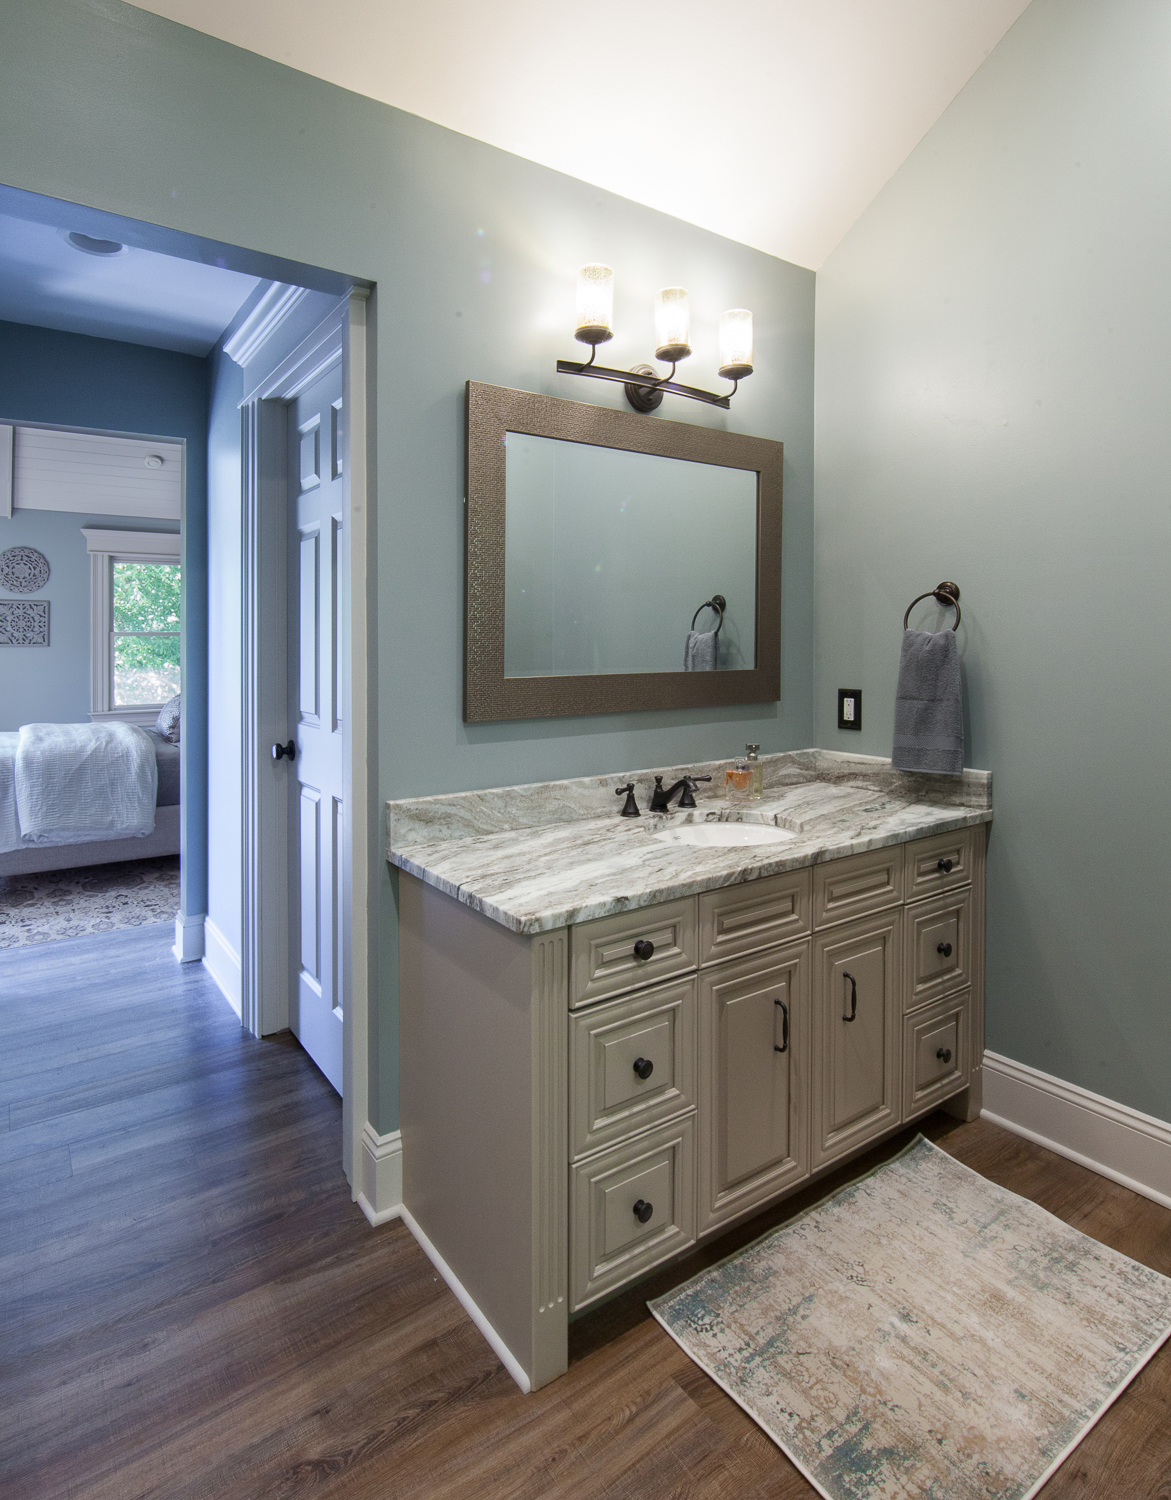 Then, we had the existing bathroom vanities refinished to match the new linen cabinet so both look brand new, and appear as if they were purchased at the same time.